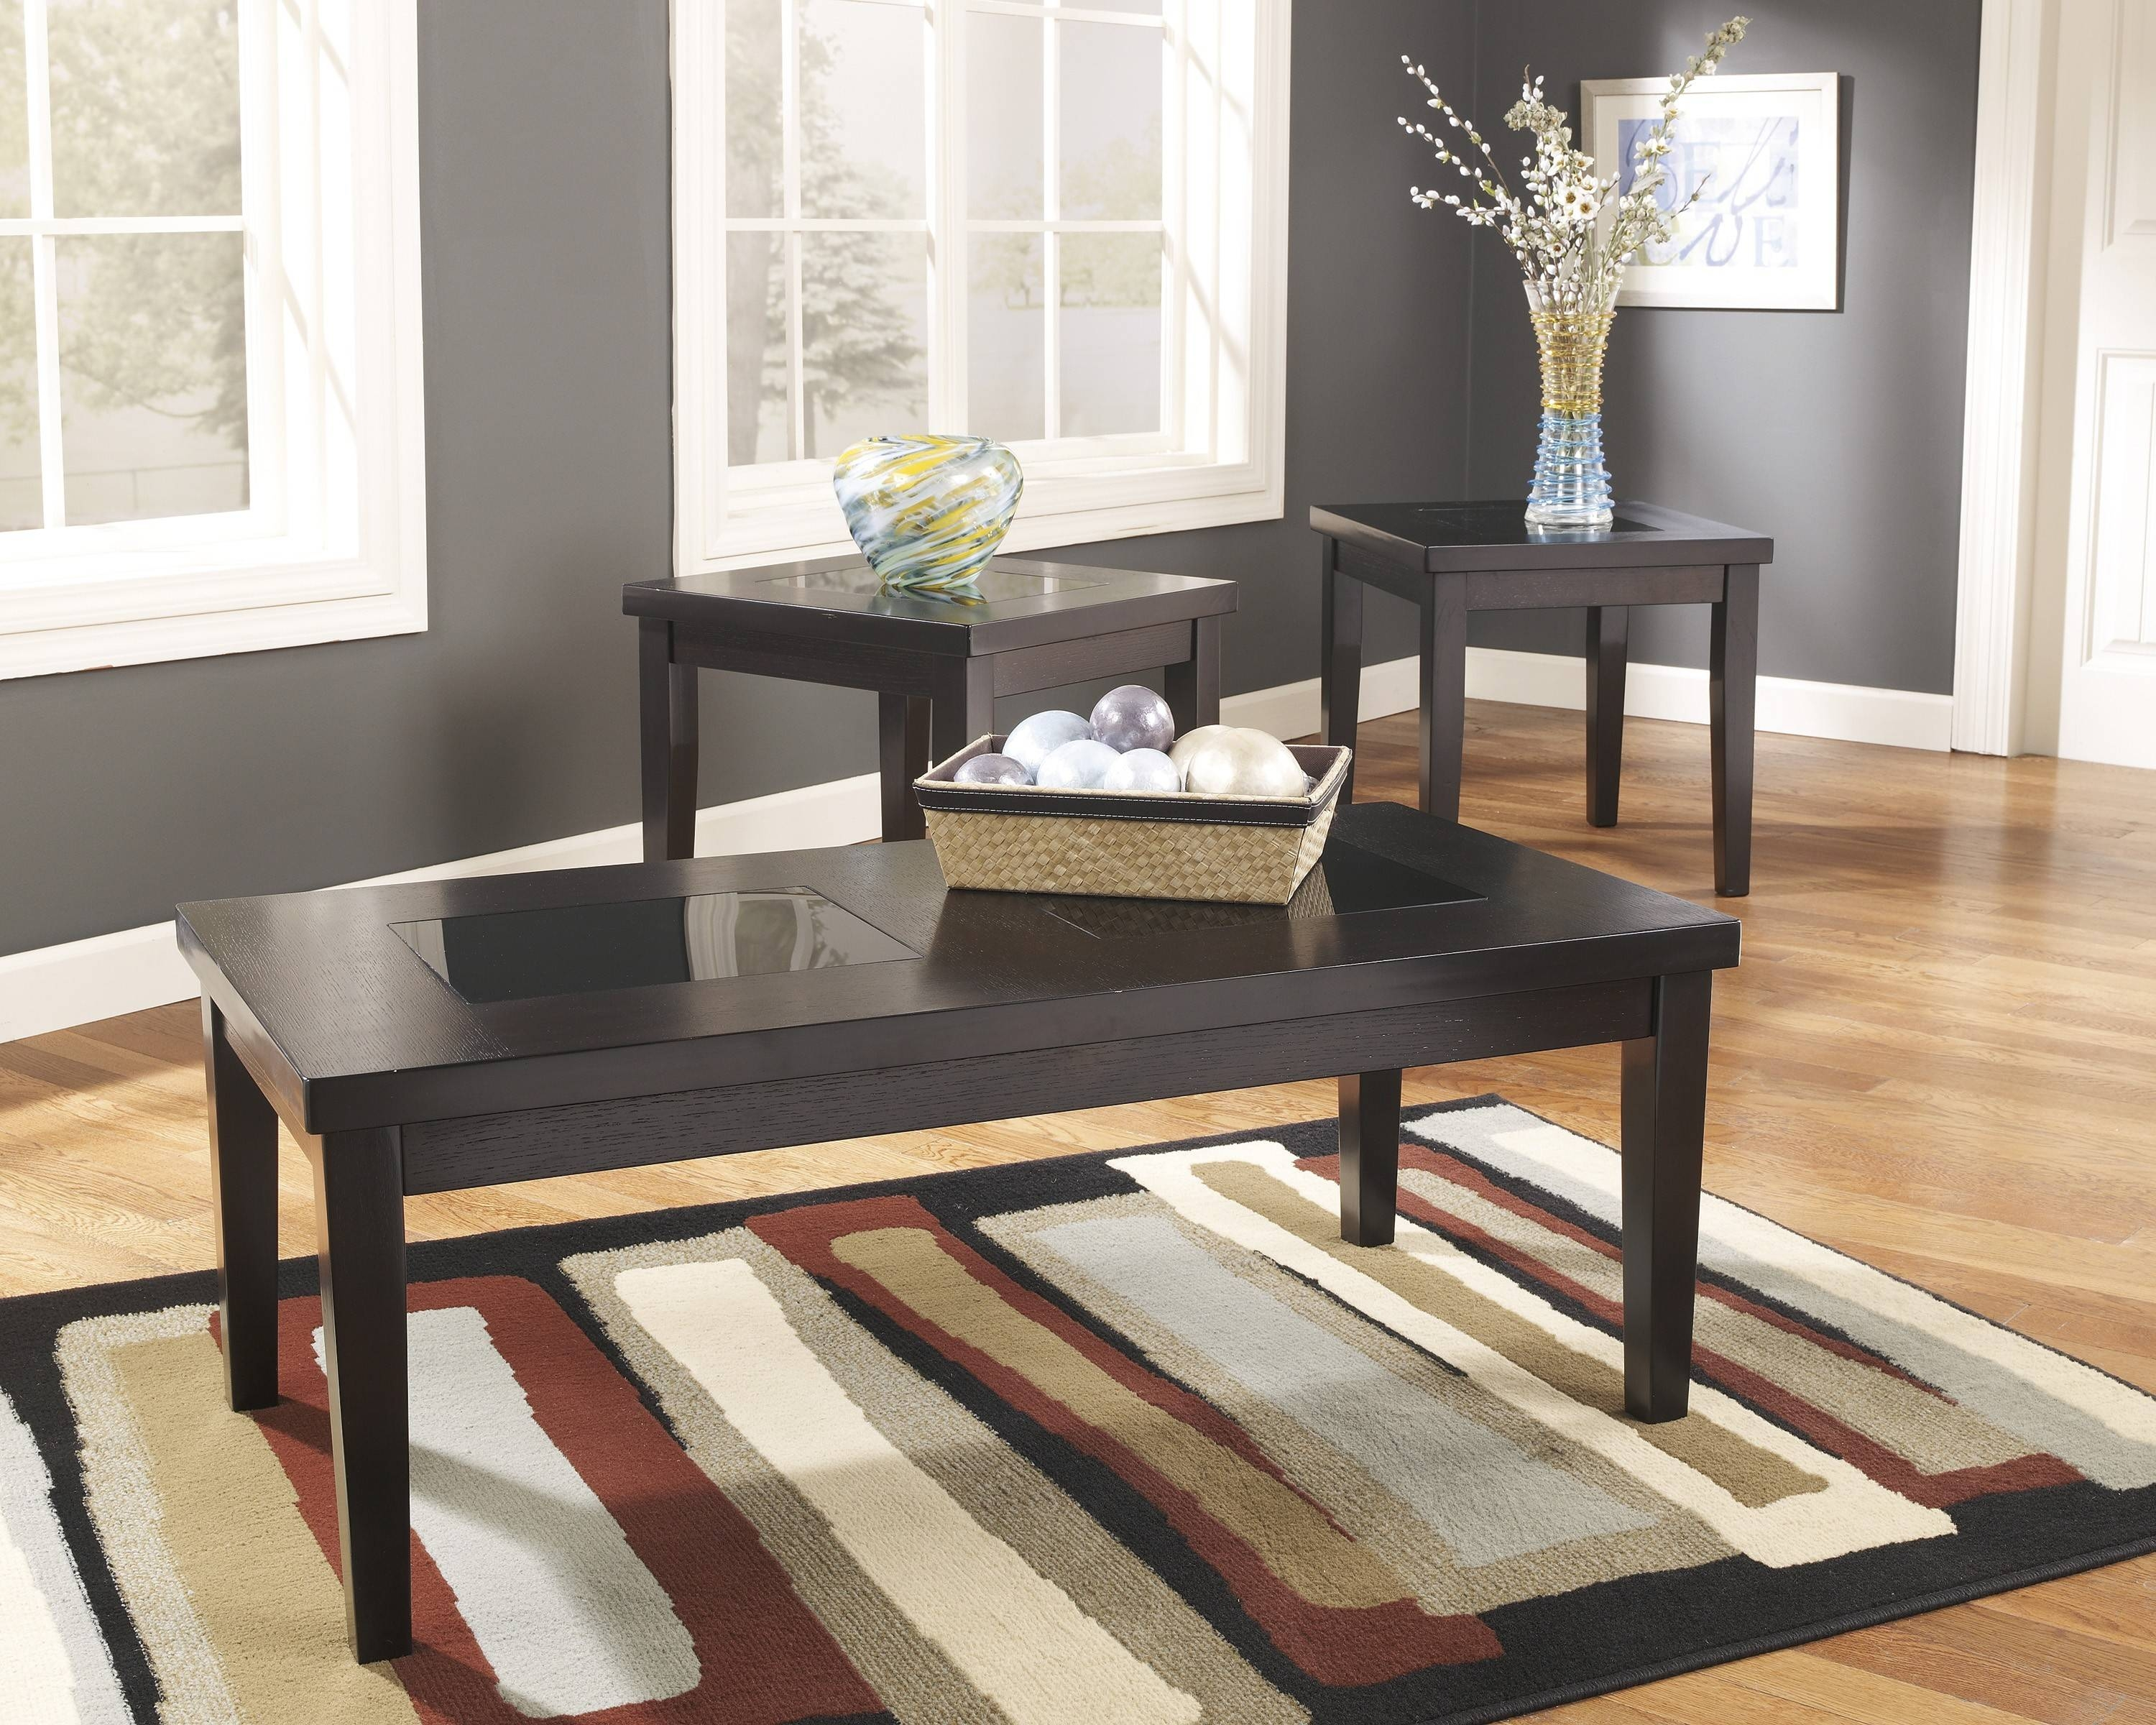 Buy Ashley Furniture T281-13 Denja 3 Piece Coffee Table Set with 2 Piece Coffee Table Sets (Image 9 of 30)